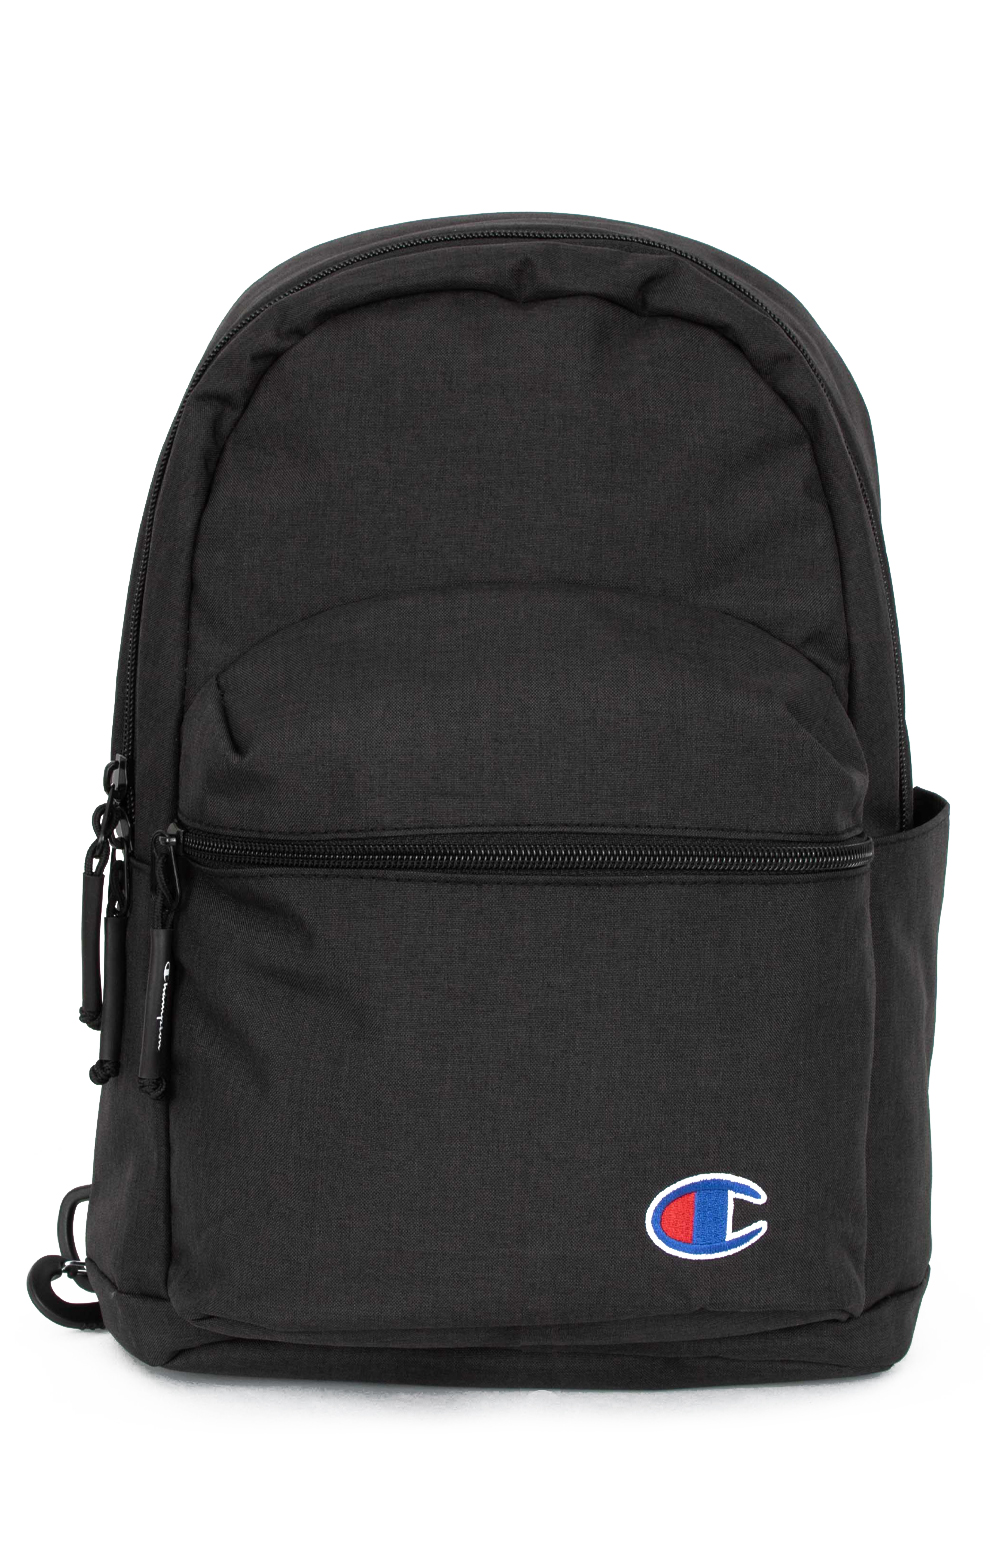 Supercize Mini Crossover Backpack - Black 5b03bdf3c59c3